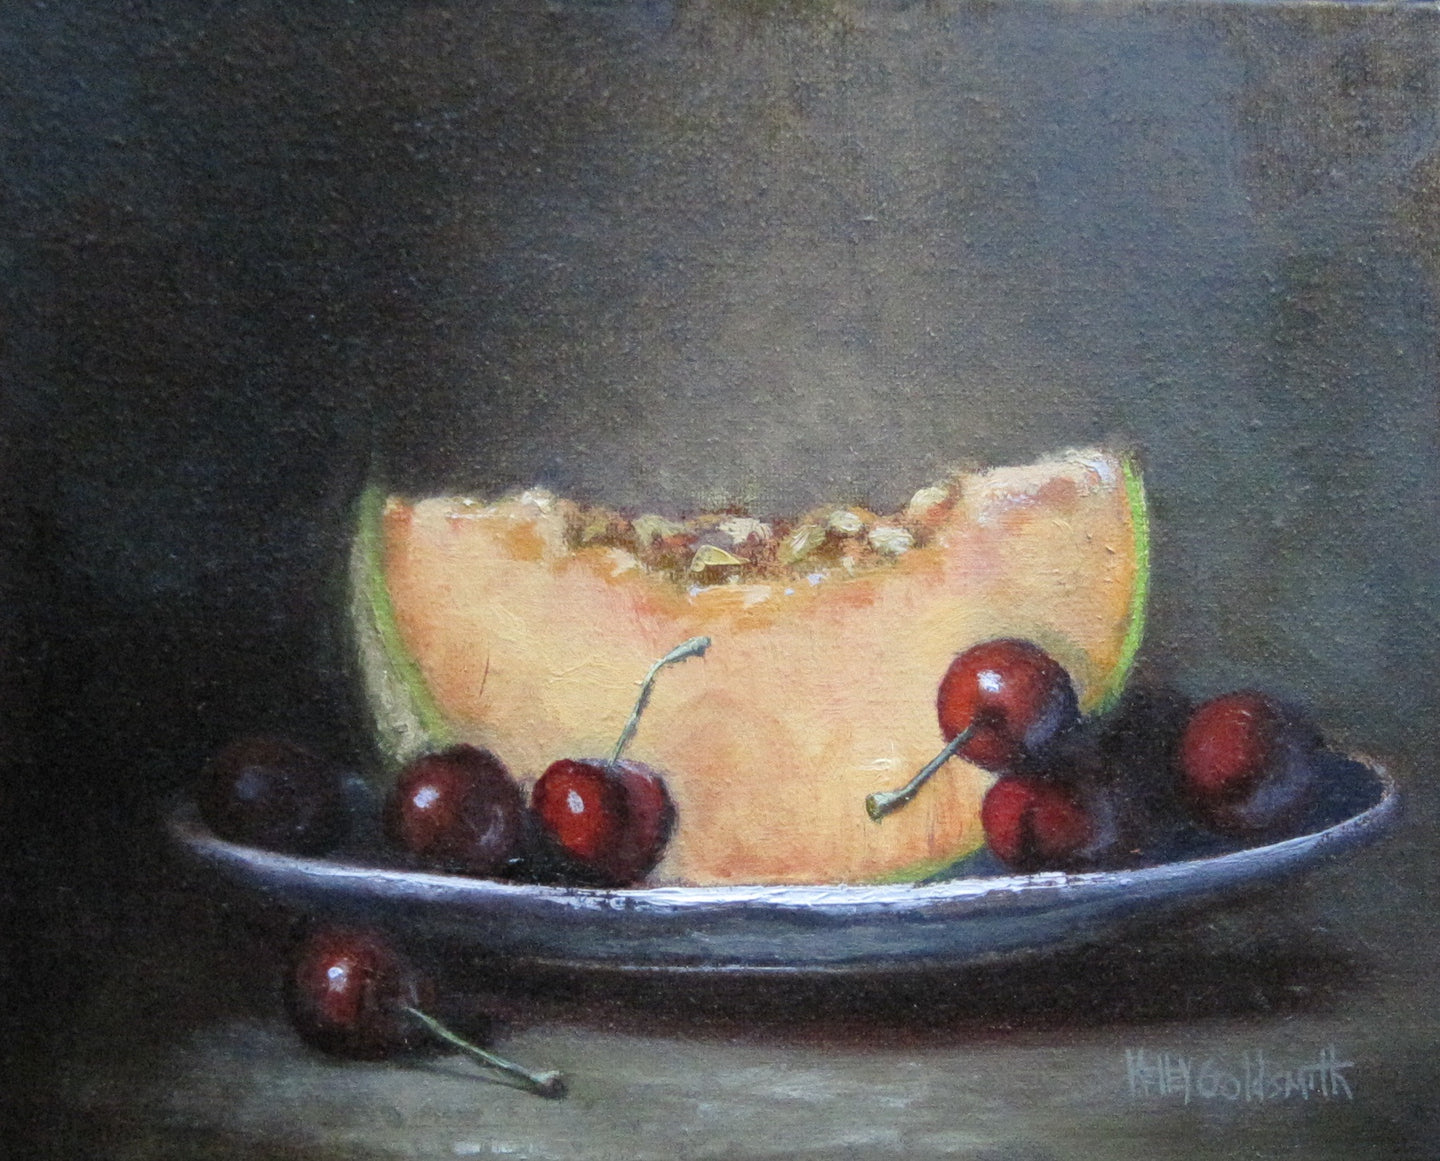 Cherries and Cantaloupe by Kelley Goldsmith